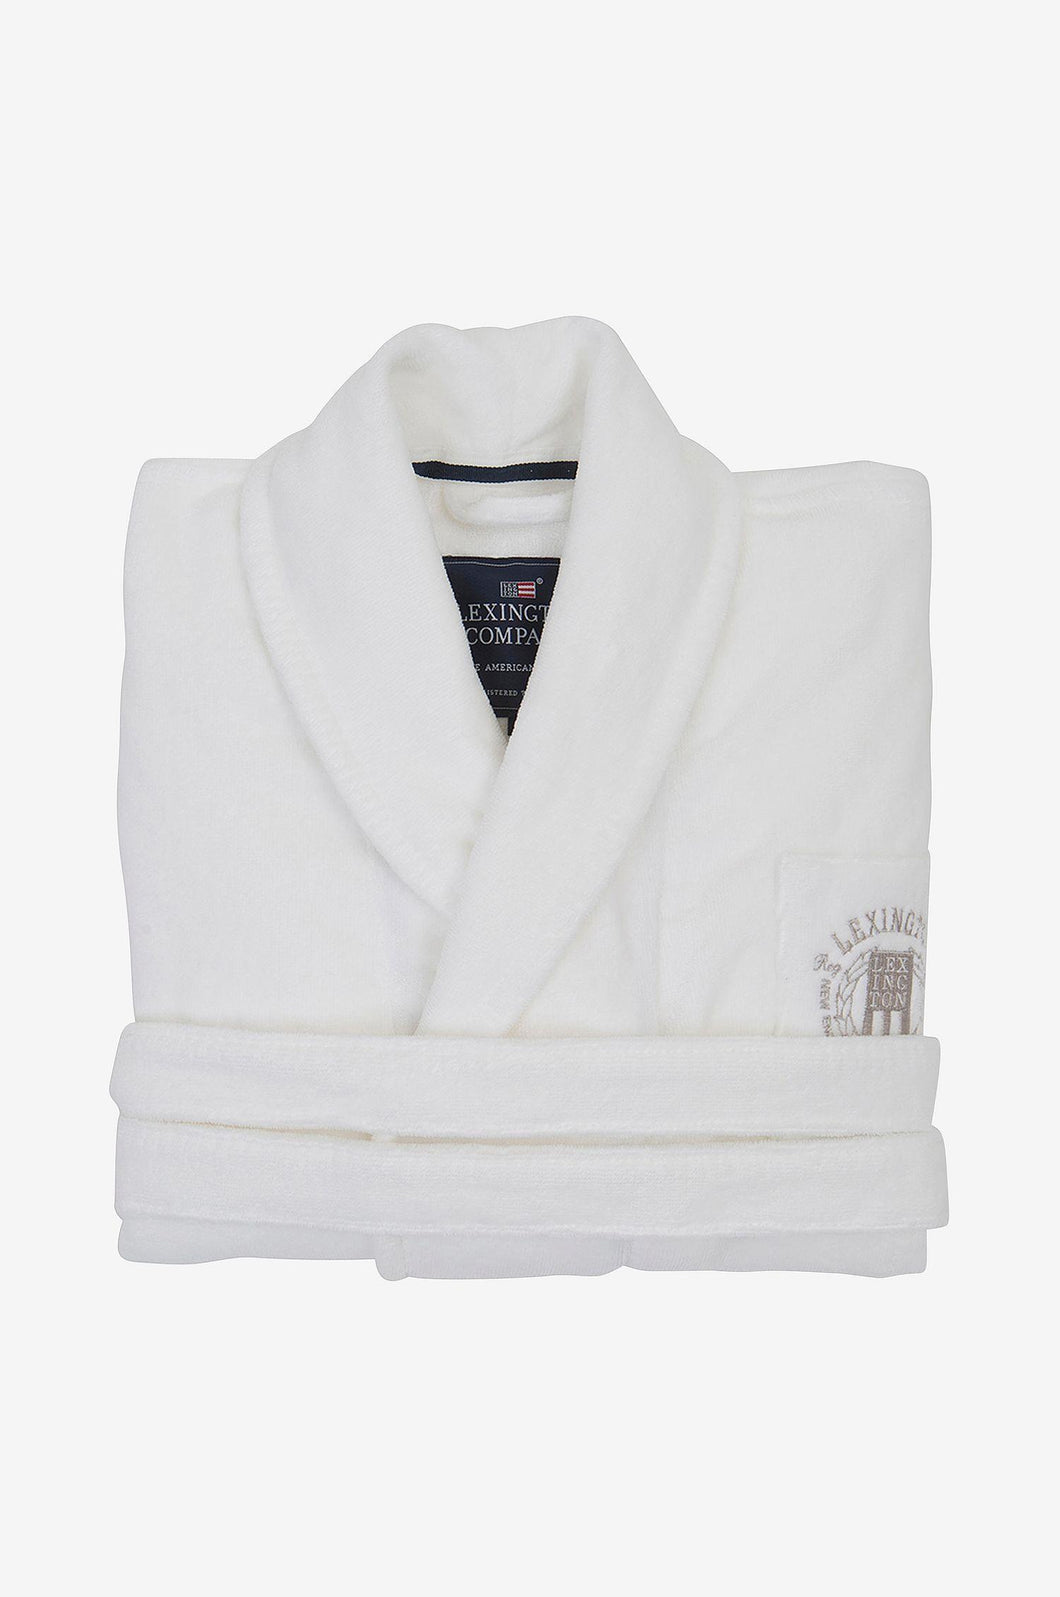 Lexington Hotel Velour Robe White